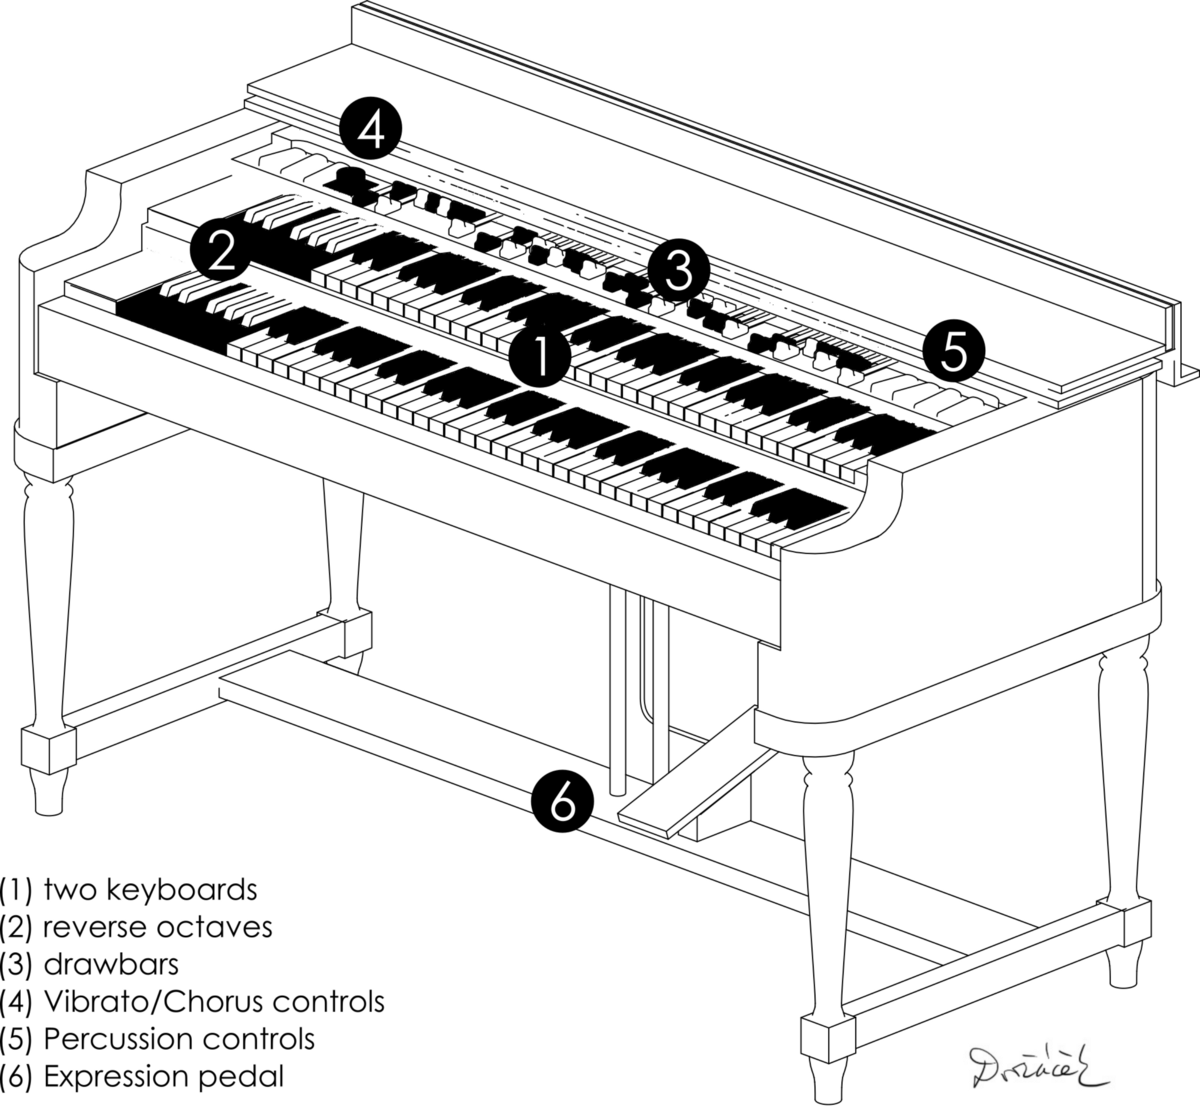 Design and realization of organ MIDI controller